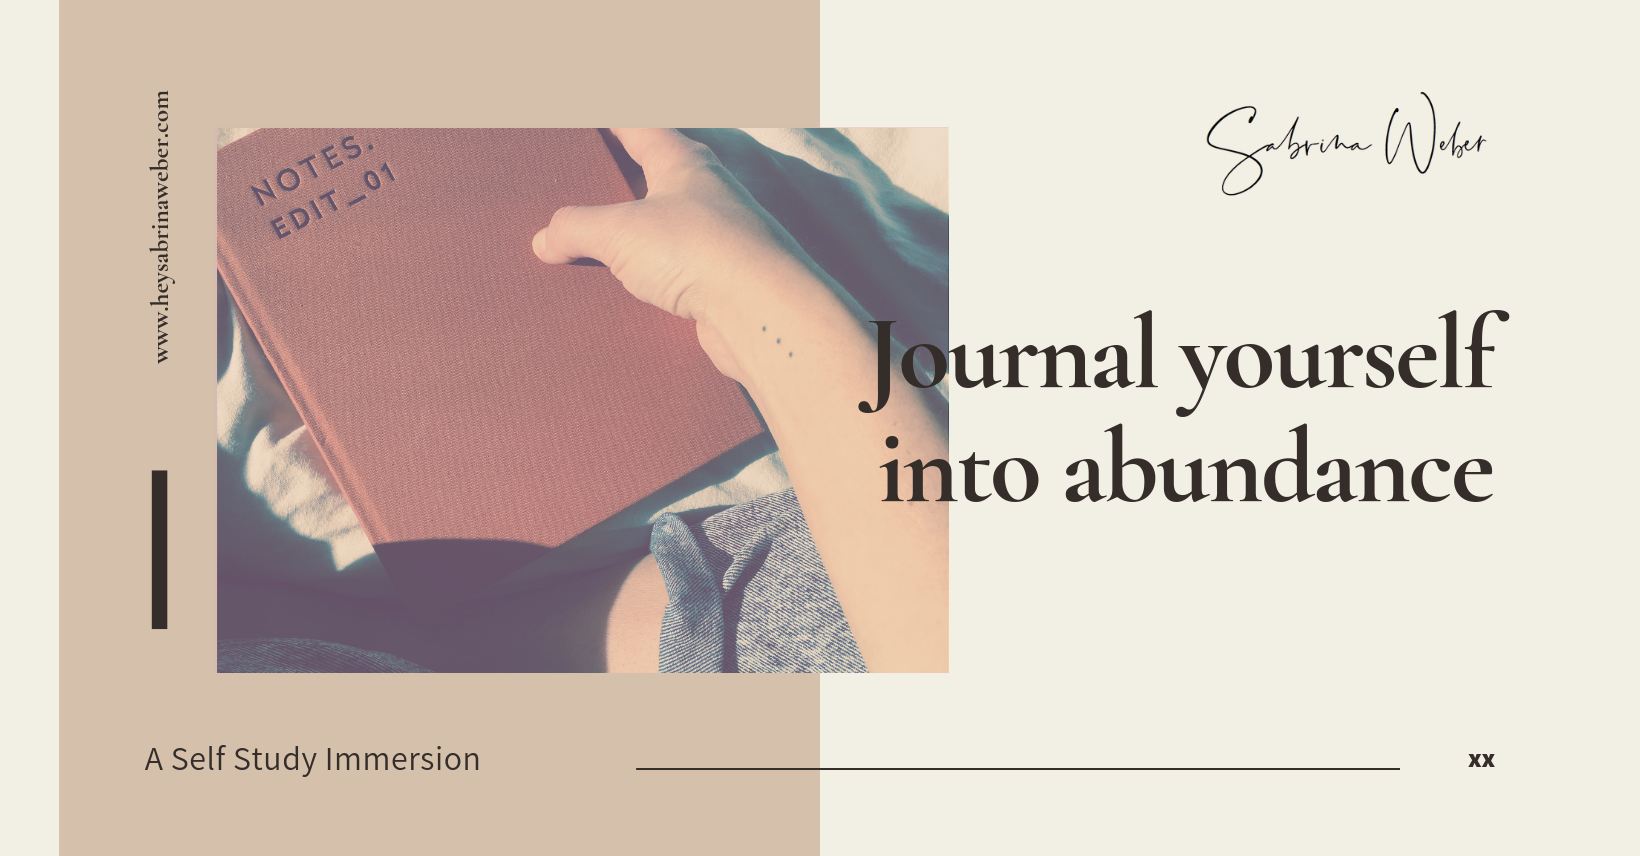 journal yourself into abundance with this self study immersion by www.heysabrinaweber.com .png